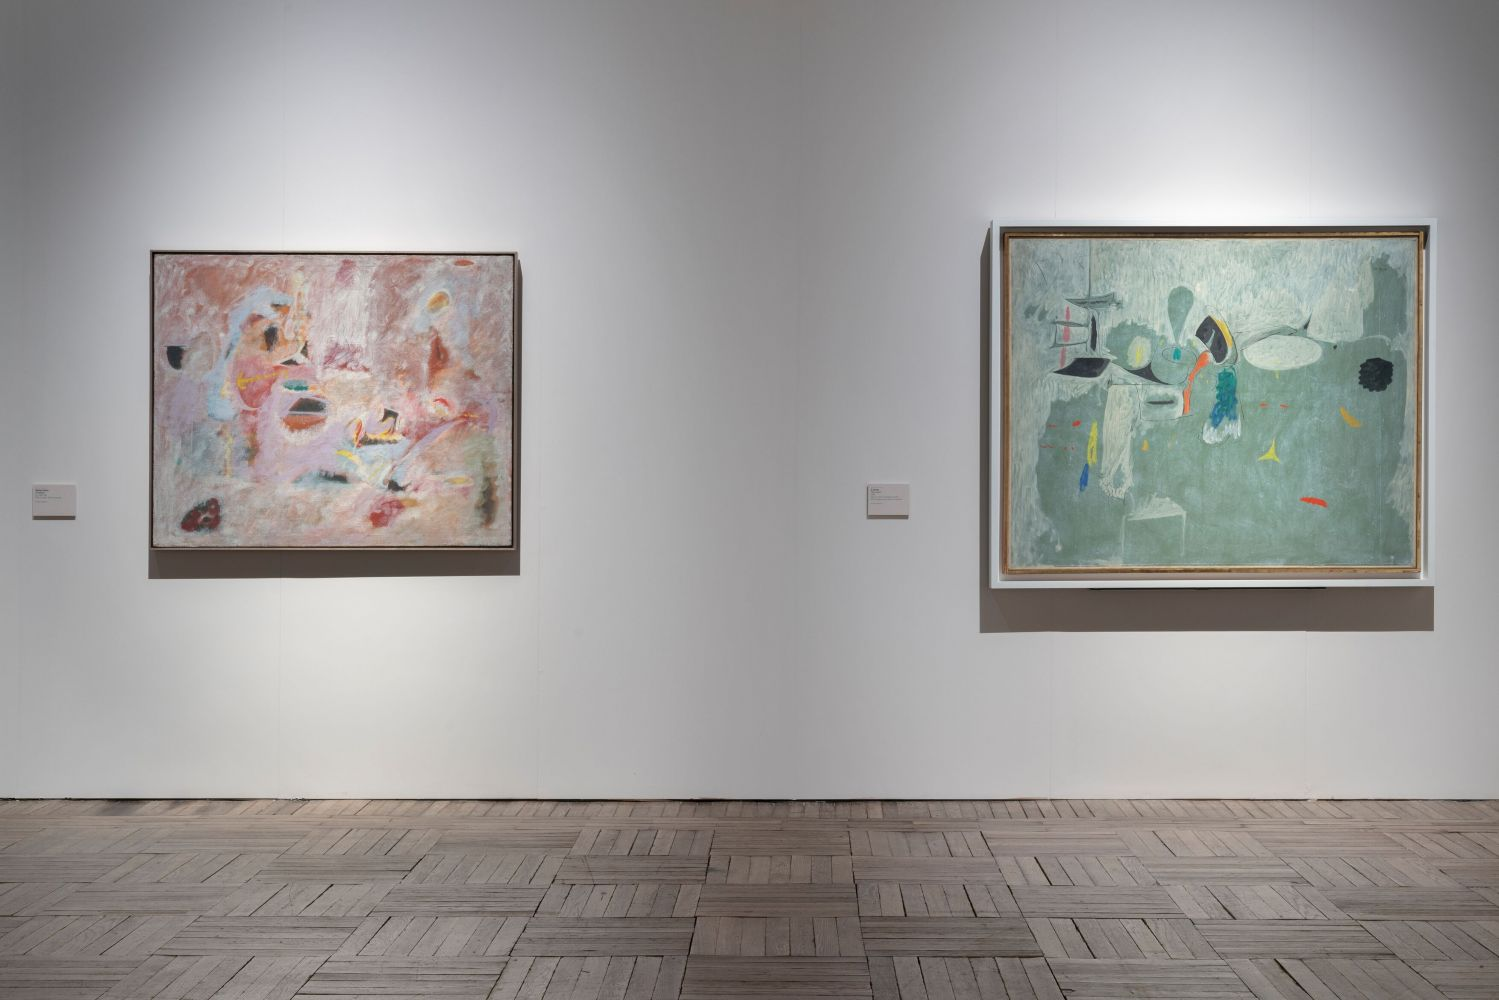 Installation photograph showing two works by Gorky: Untitled (pink painting) and The Limit